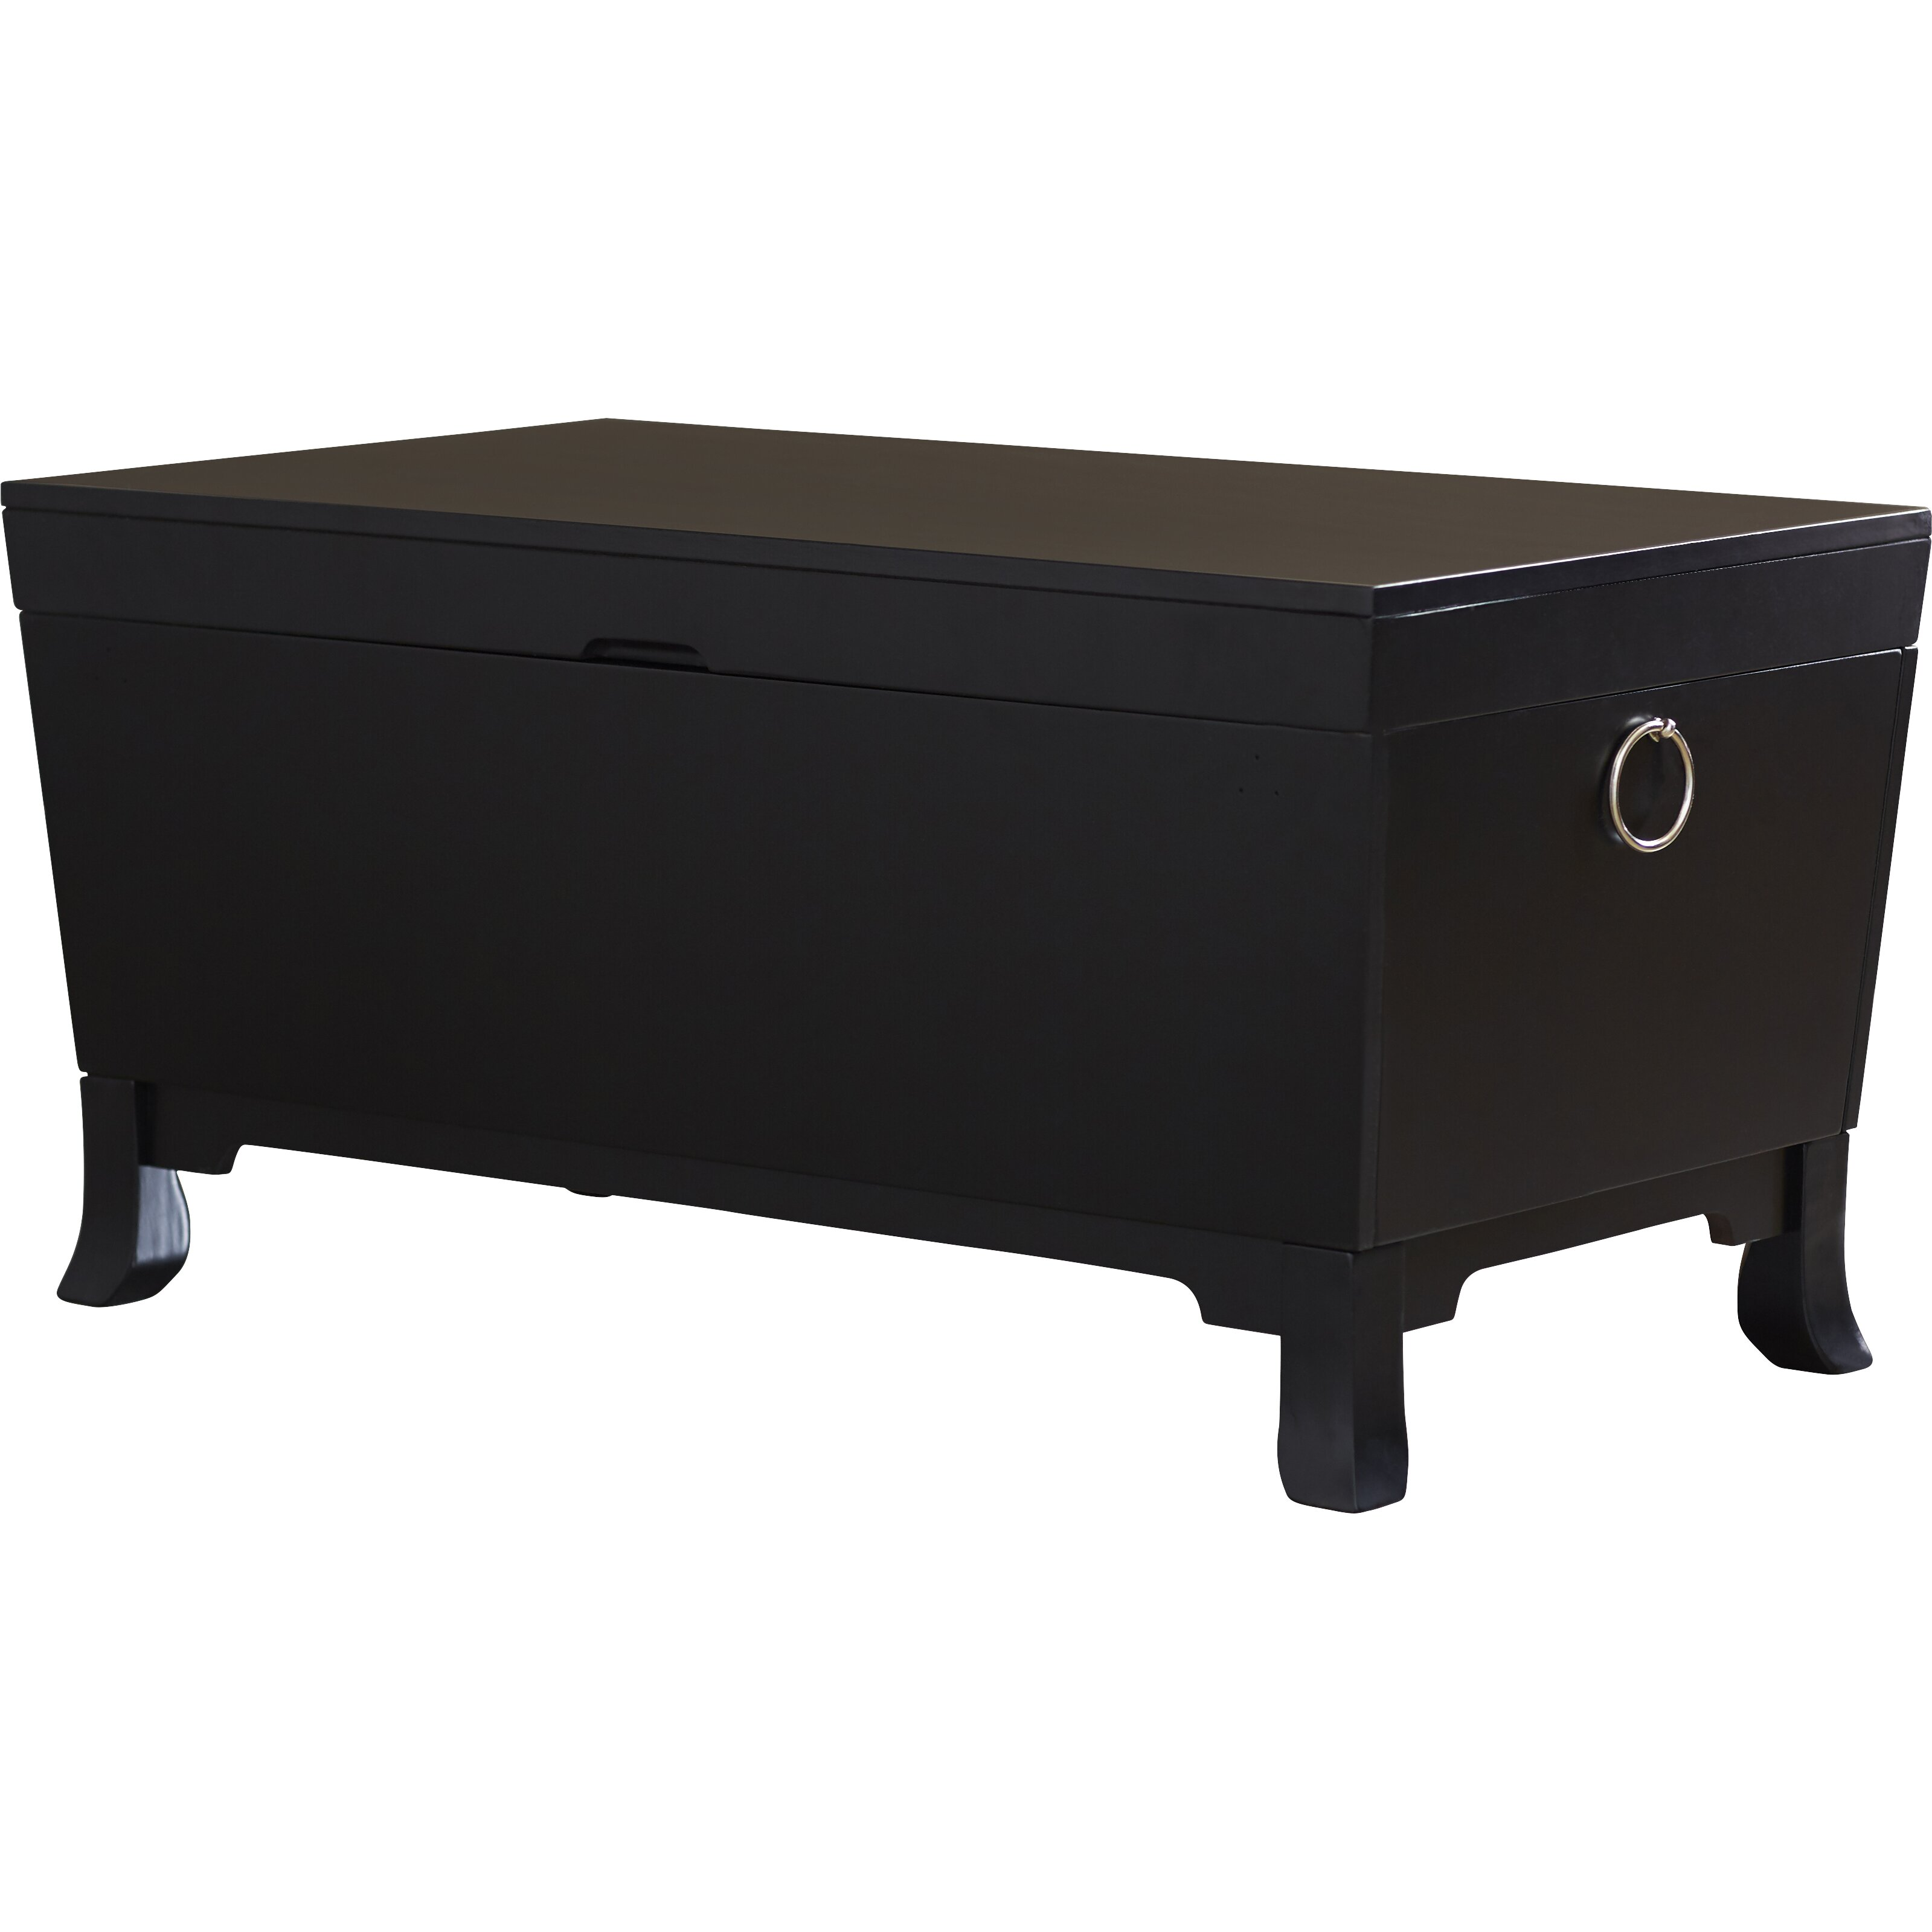 Three Posts Orchard Park Trunk Coffee Table With Lift Top Reviews Wayfair